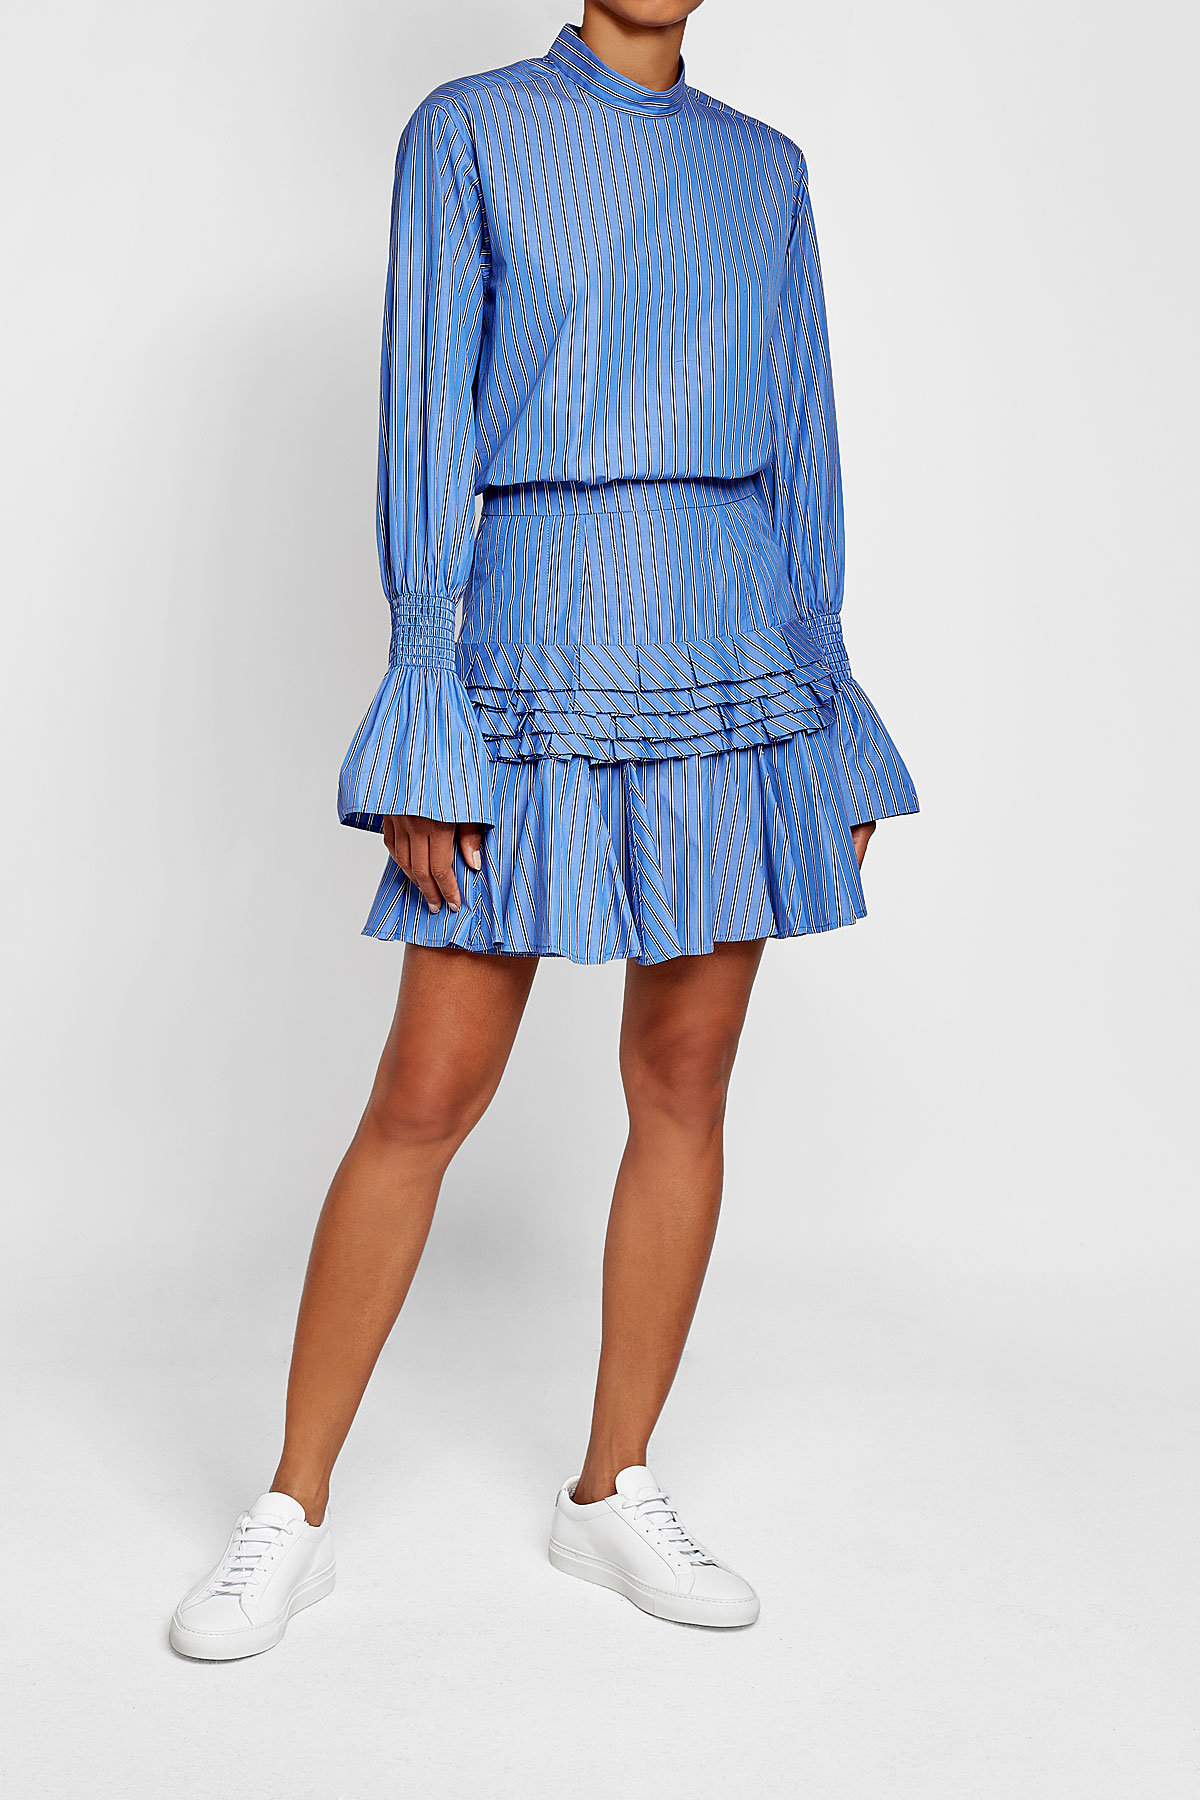 maggie marilyn Striped Cotton Shirt with Statement Cuffs - image via Stylebop.com